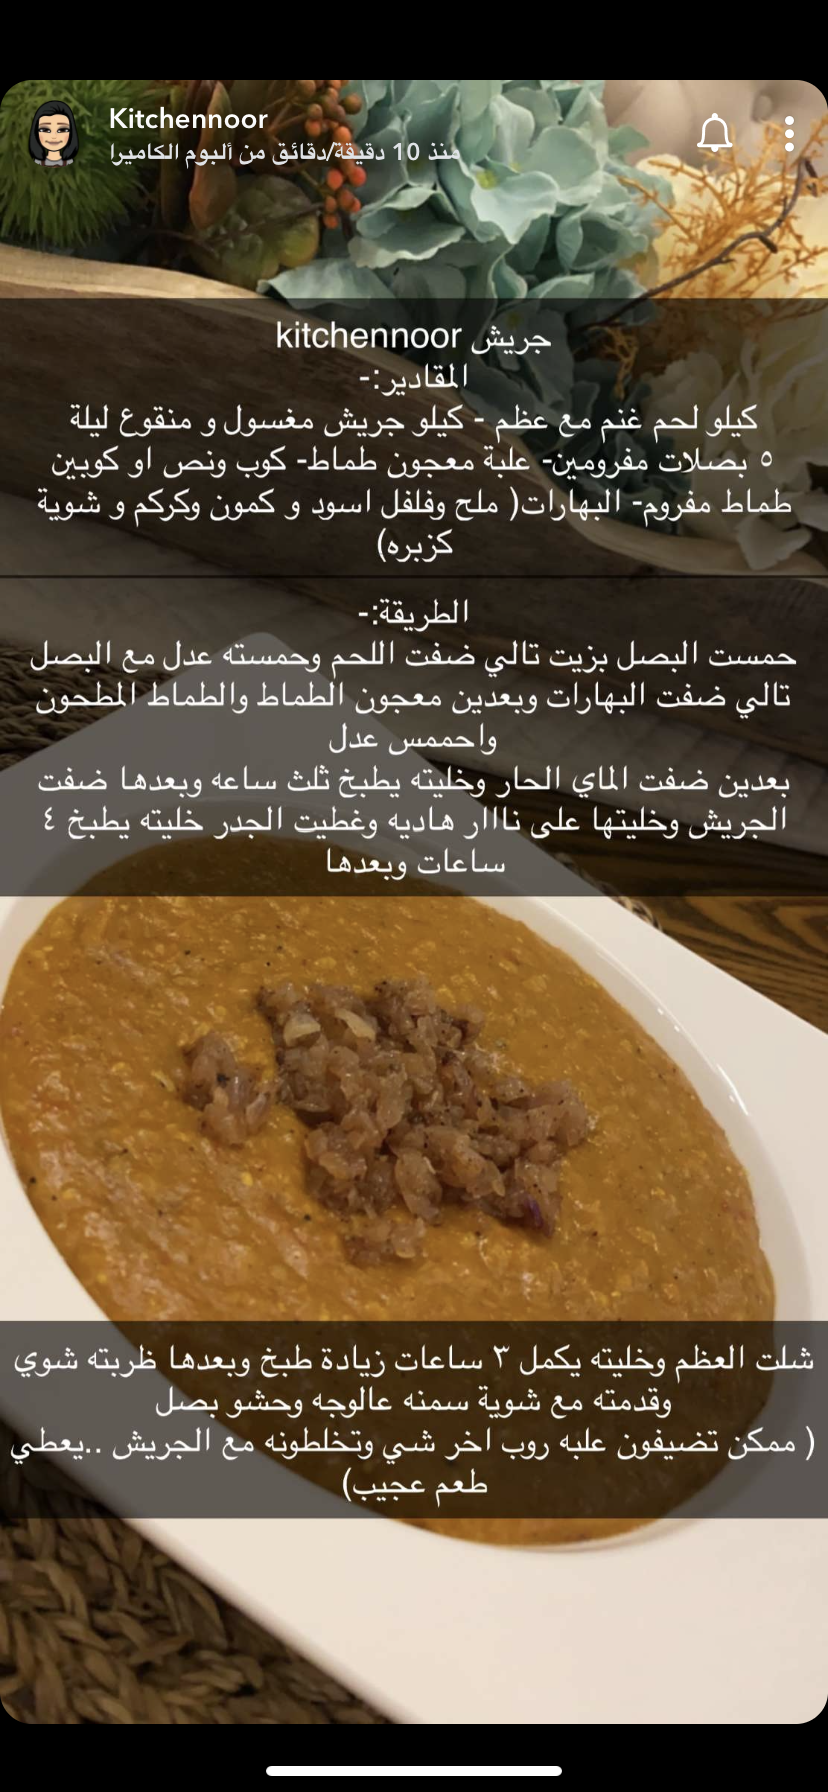 جريش احمر Cooking Recipes Food Recipies Cooking